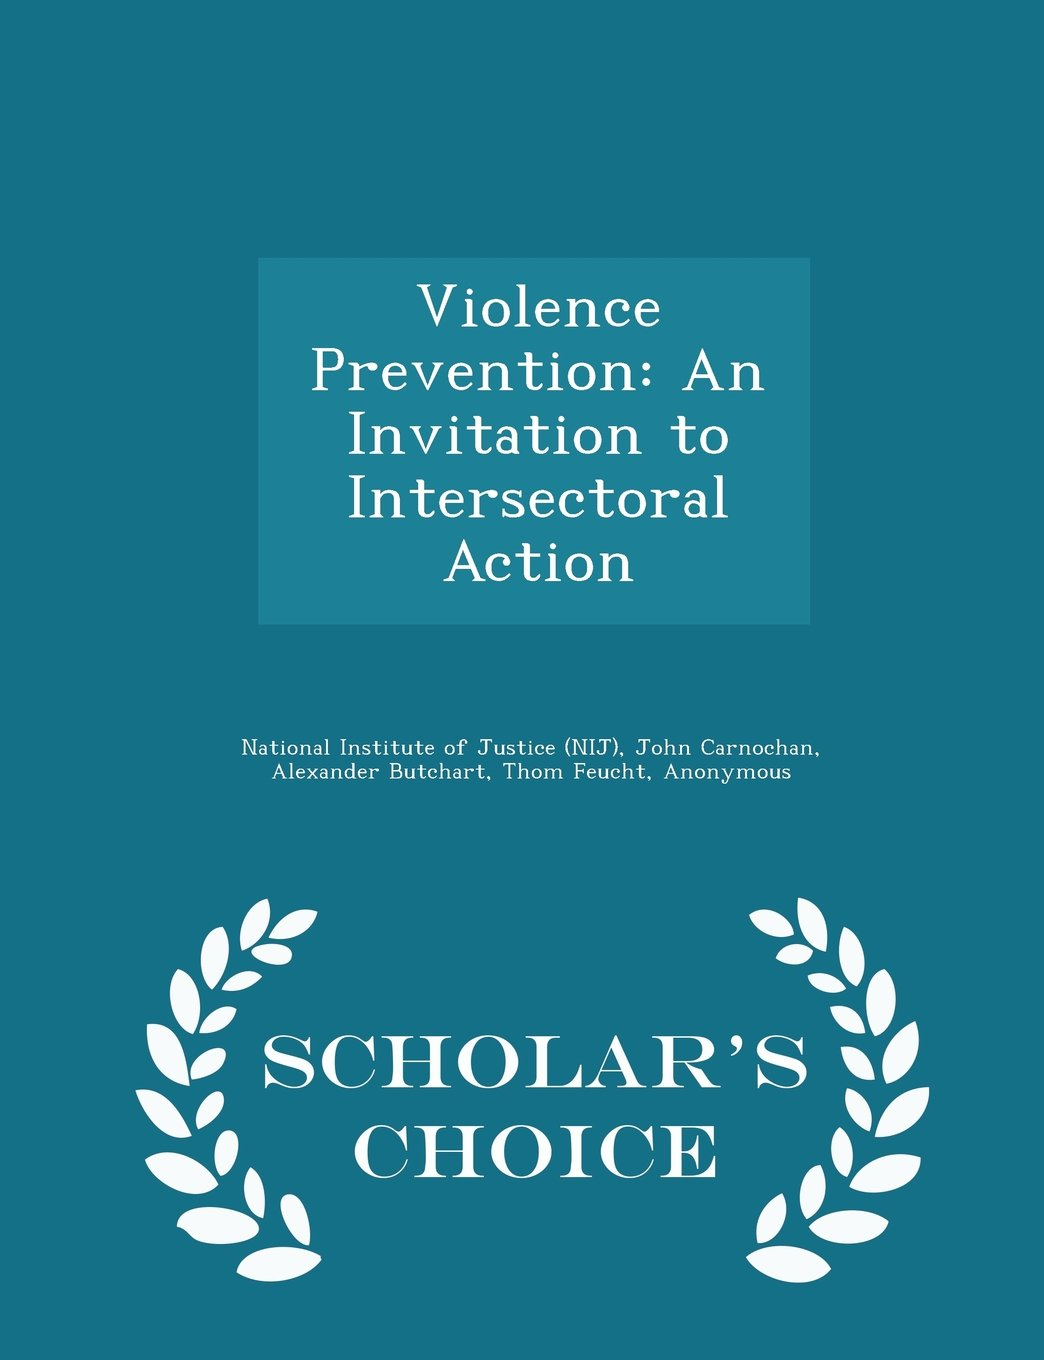 Read Online Violence Prevention: An Invitation to Intersectoral Action - Scholar's Choice Edition pdf epub